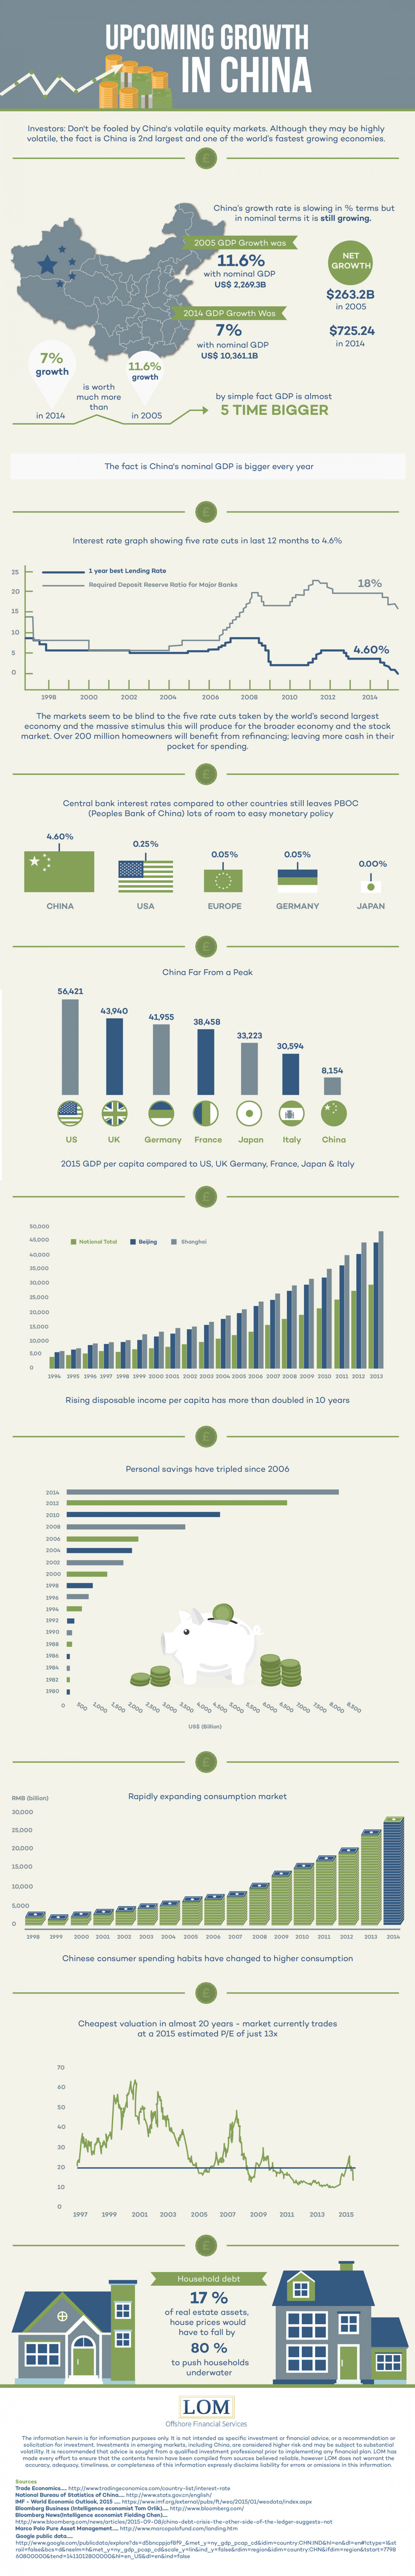 Upcoming Economic Growth in China Infographic